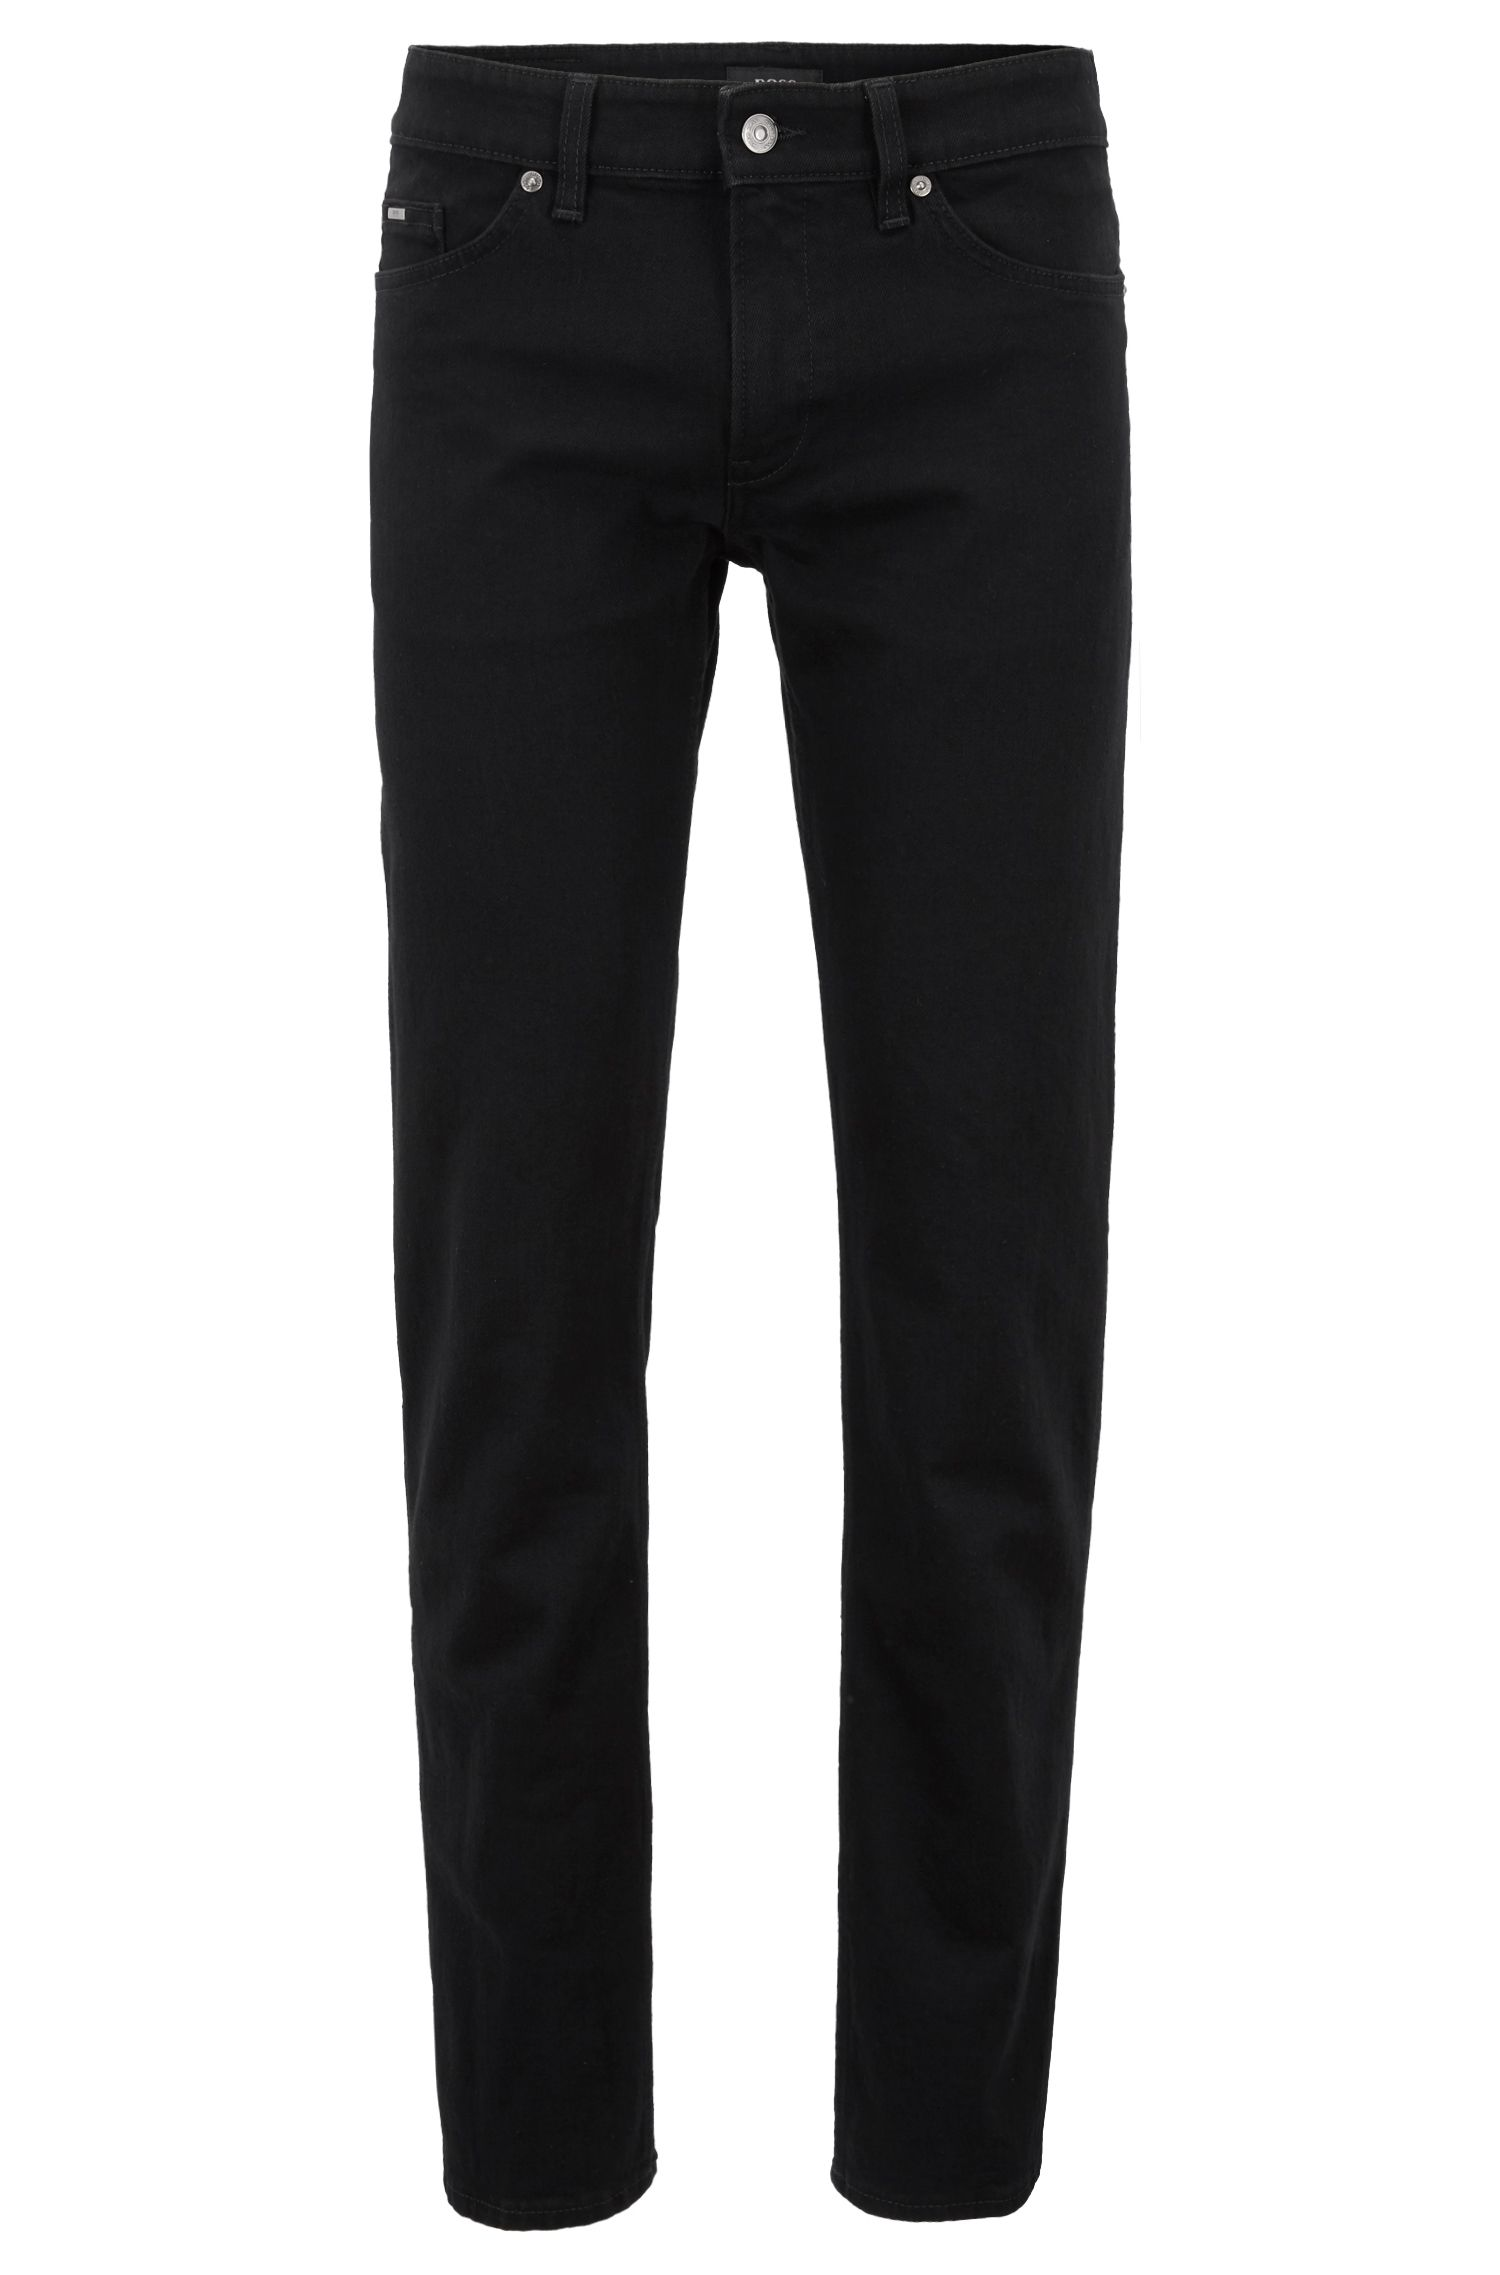 Jean Slim Fit en denim stretch noir profond, Noir